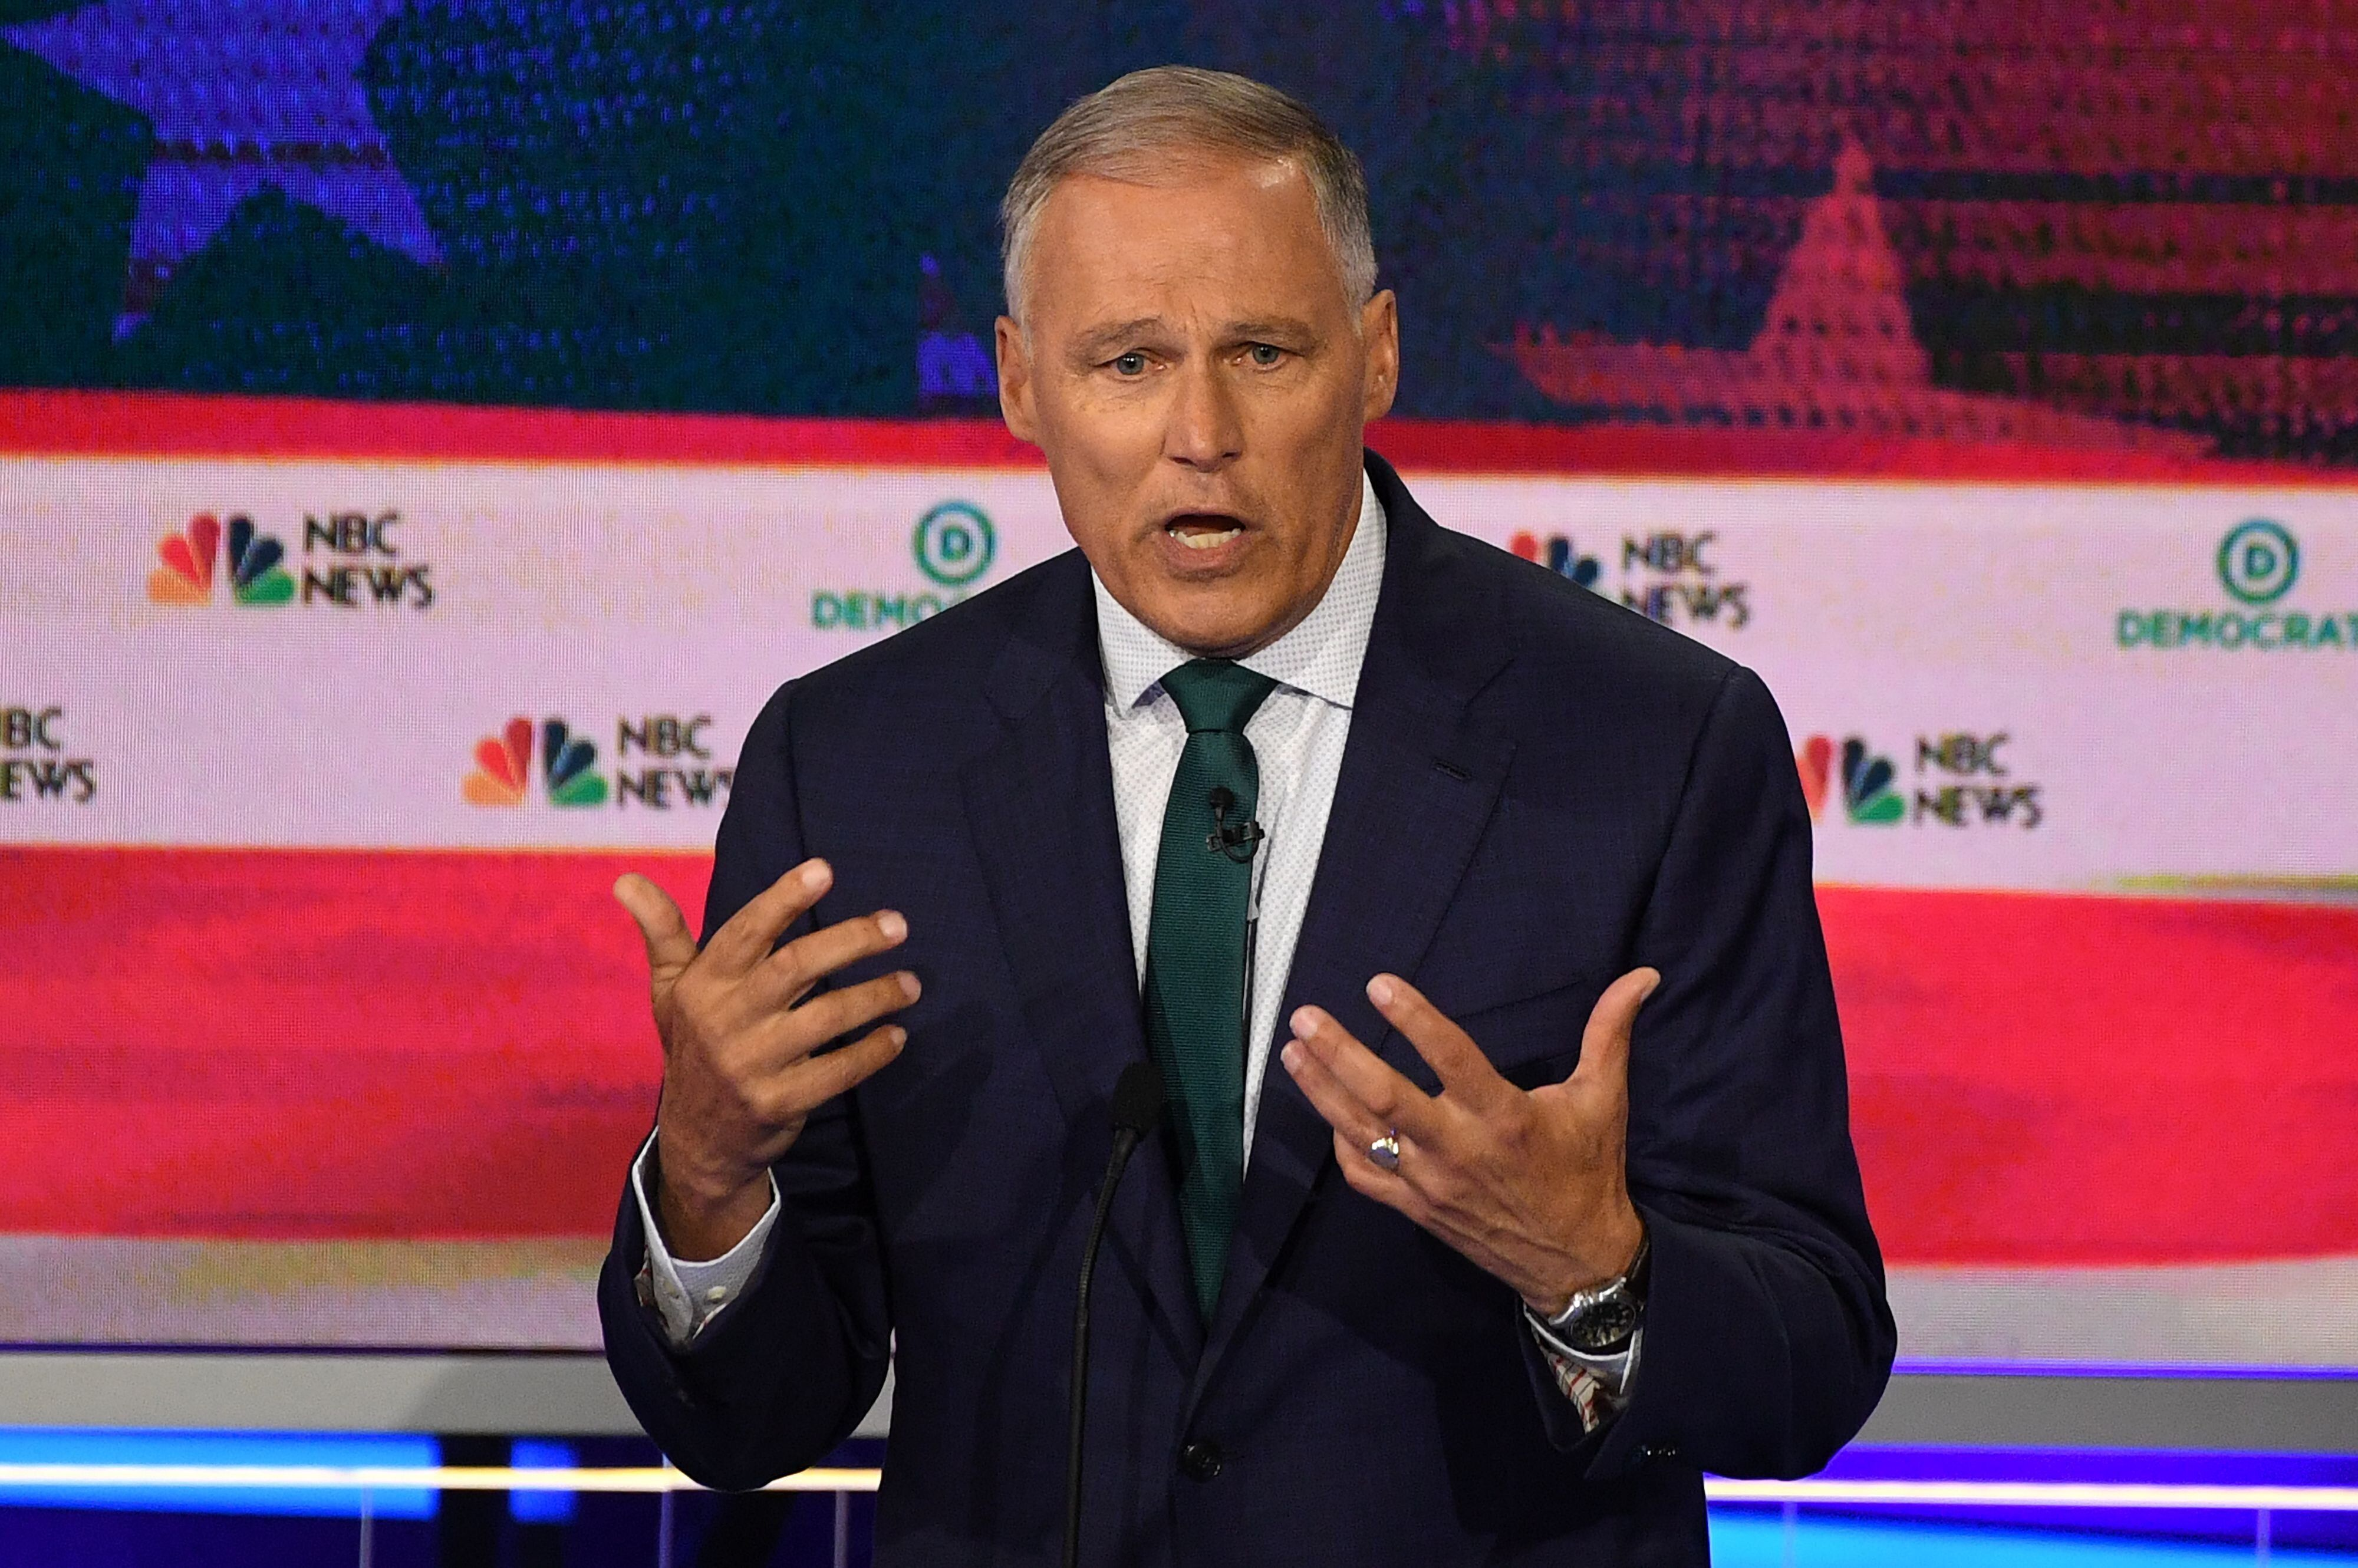 Washington Gov. Jay Inslee is centering his White House run entirely on climate change.